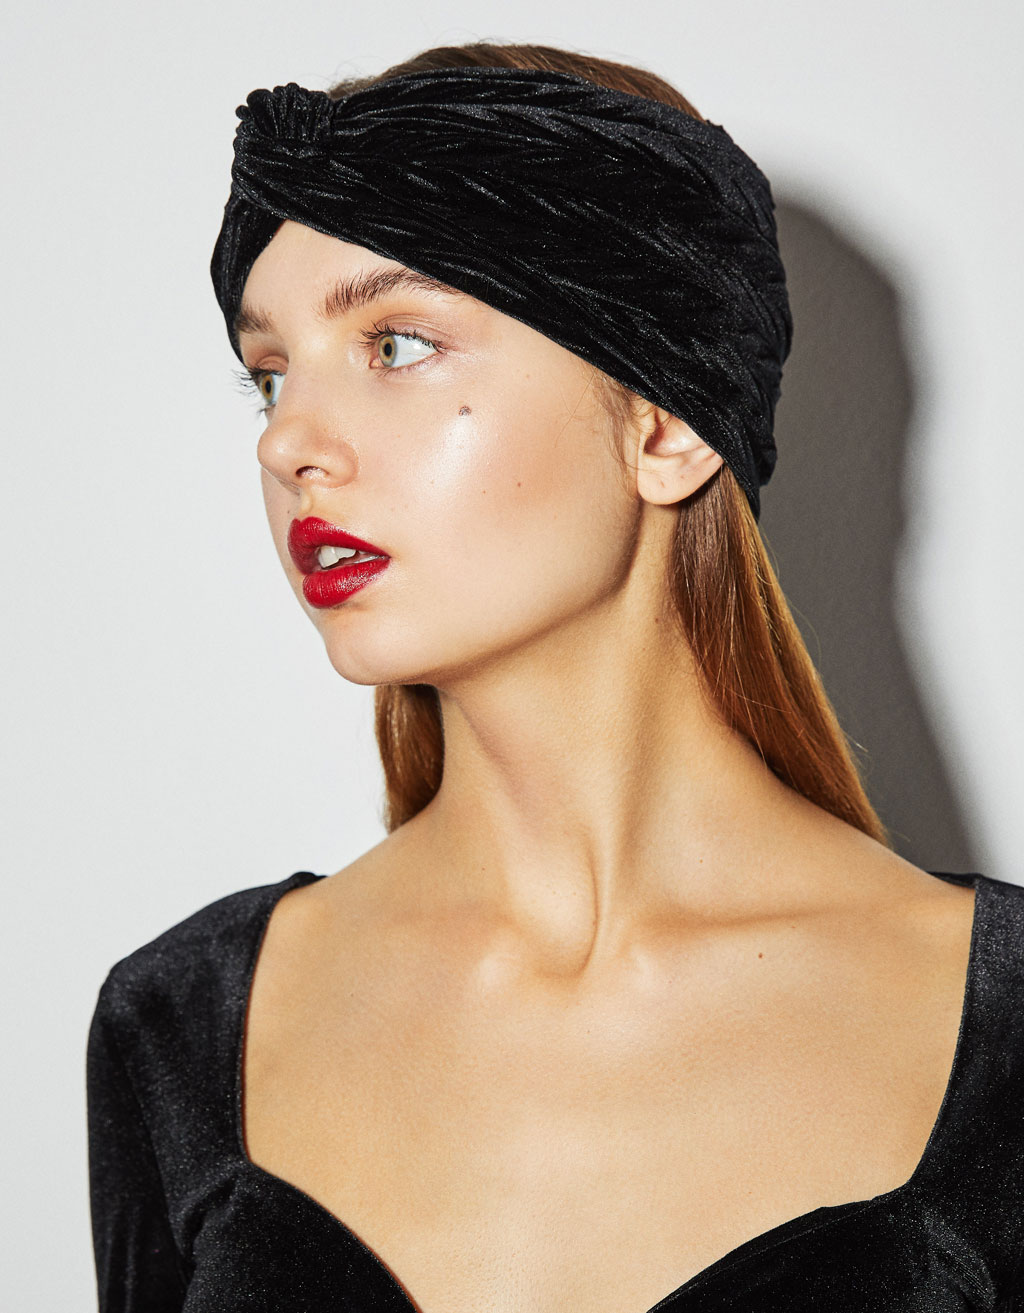 Velvet turban-style headband with plaited effect